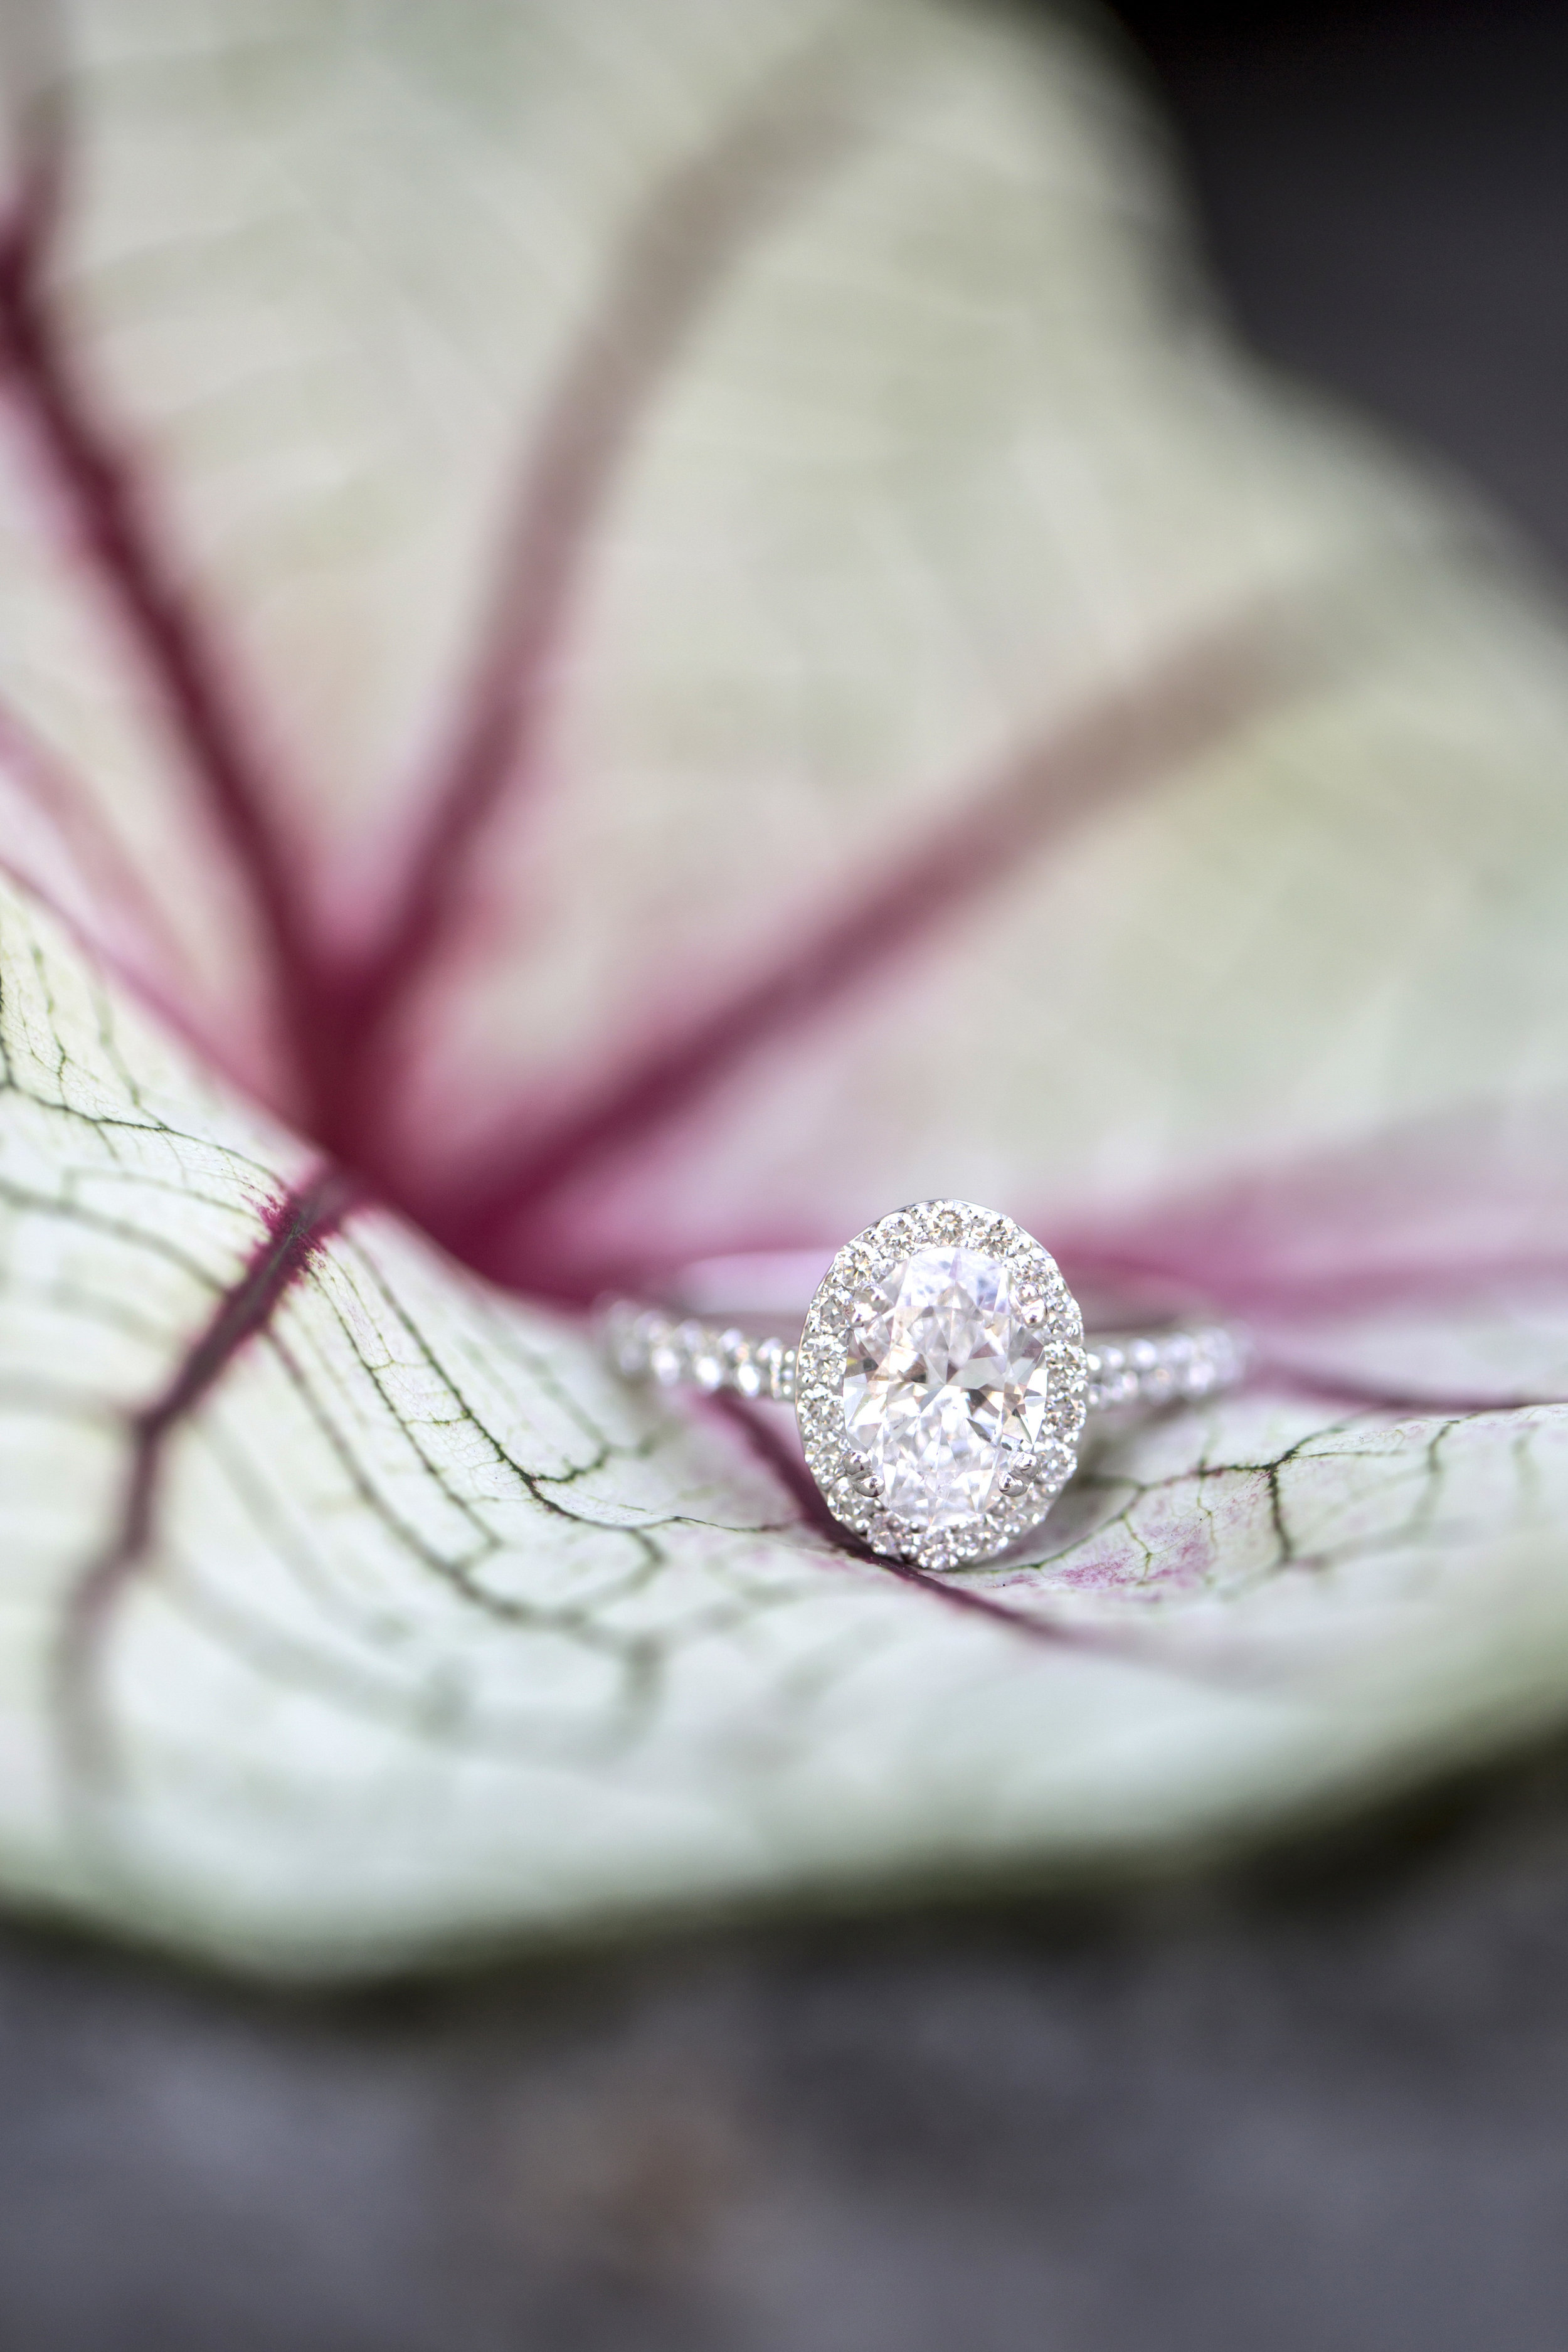 Rebecca_K_Clark_Photography_Engagement_Gallery_Web-13.JPG